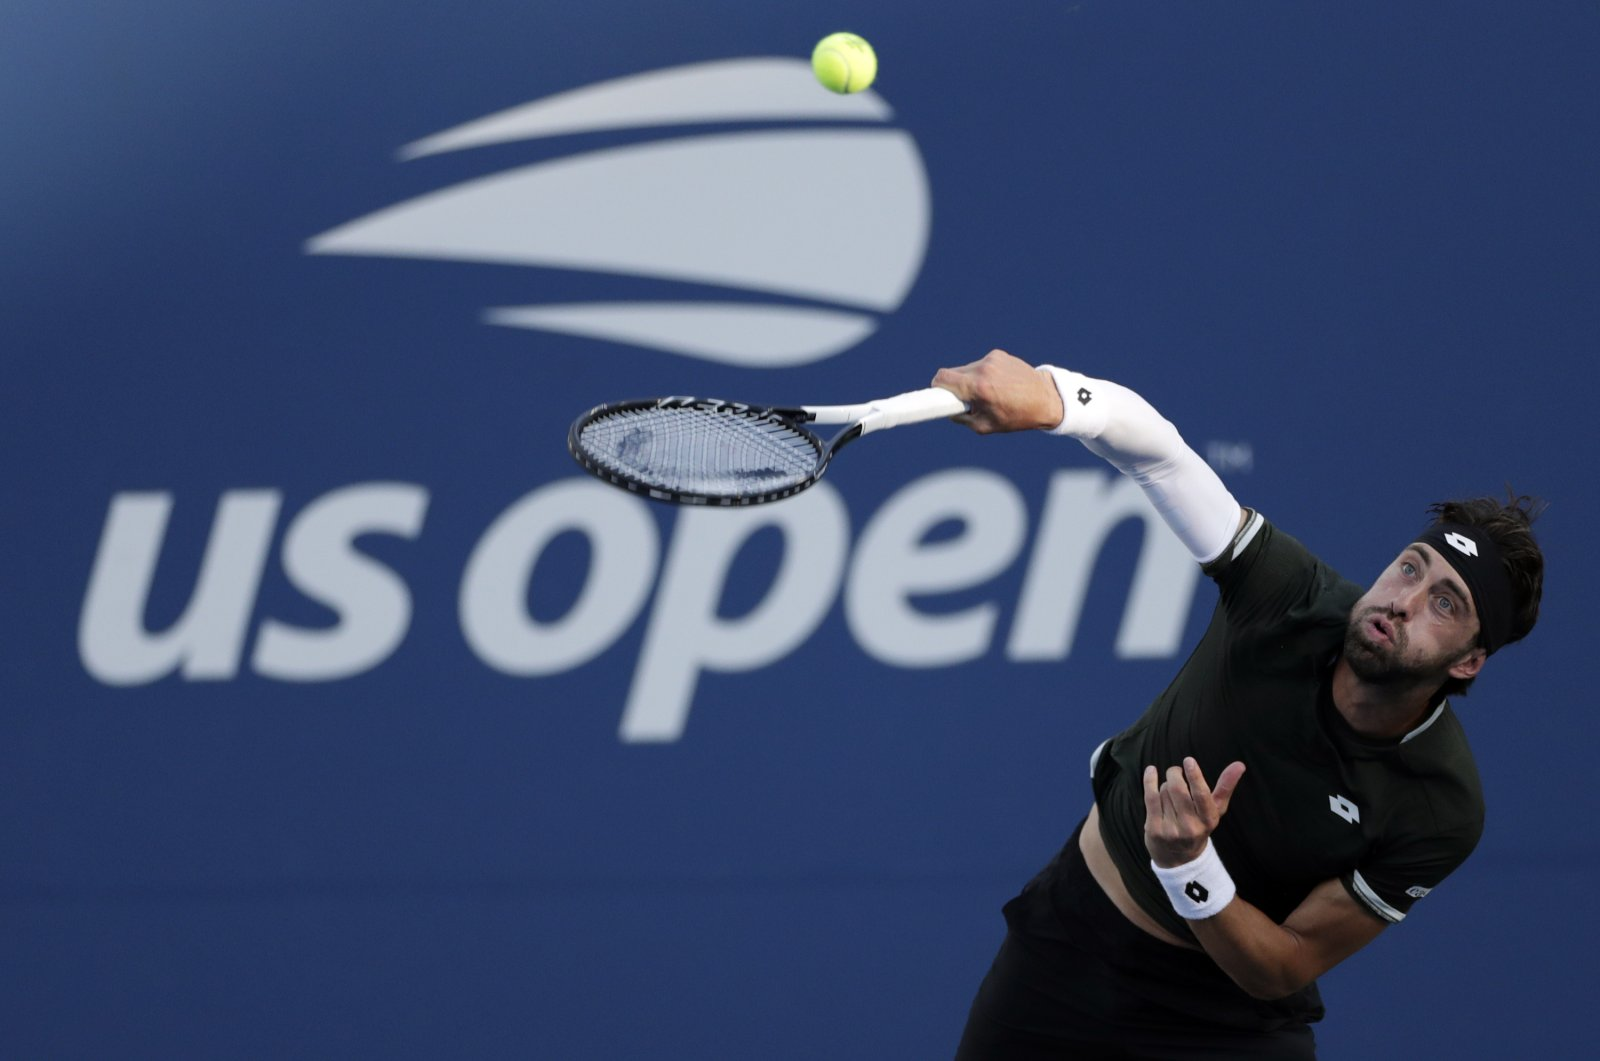 Nikoloz Basilashvili serves to Dominik Koepfer during the third round of the U.S. Open in New York, Aug. 30, 2019. (AP Photo)